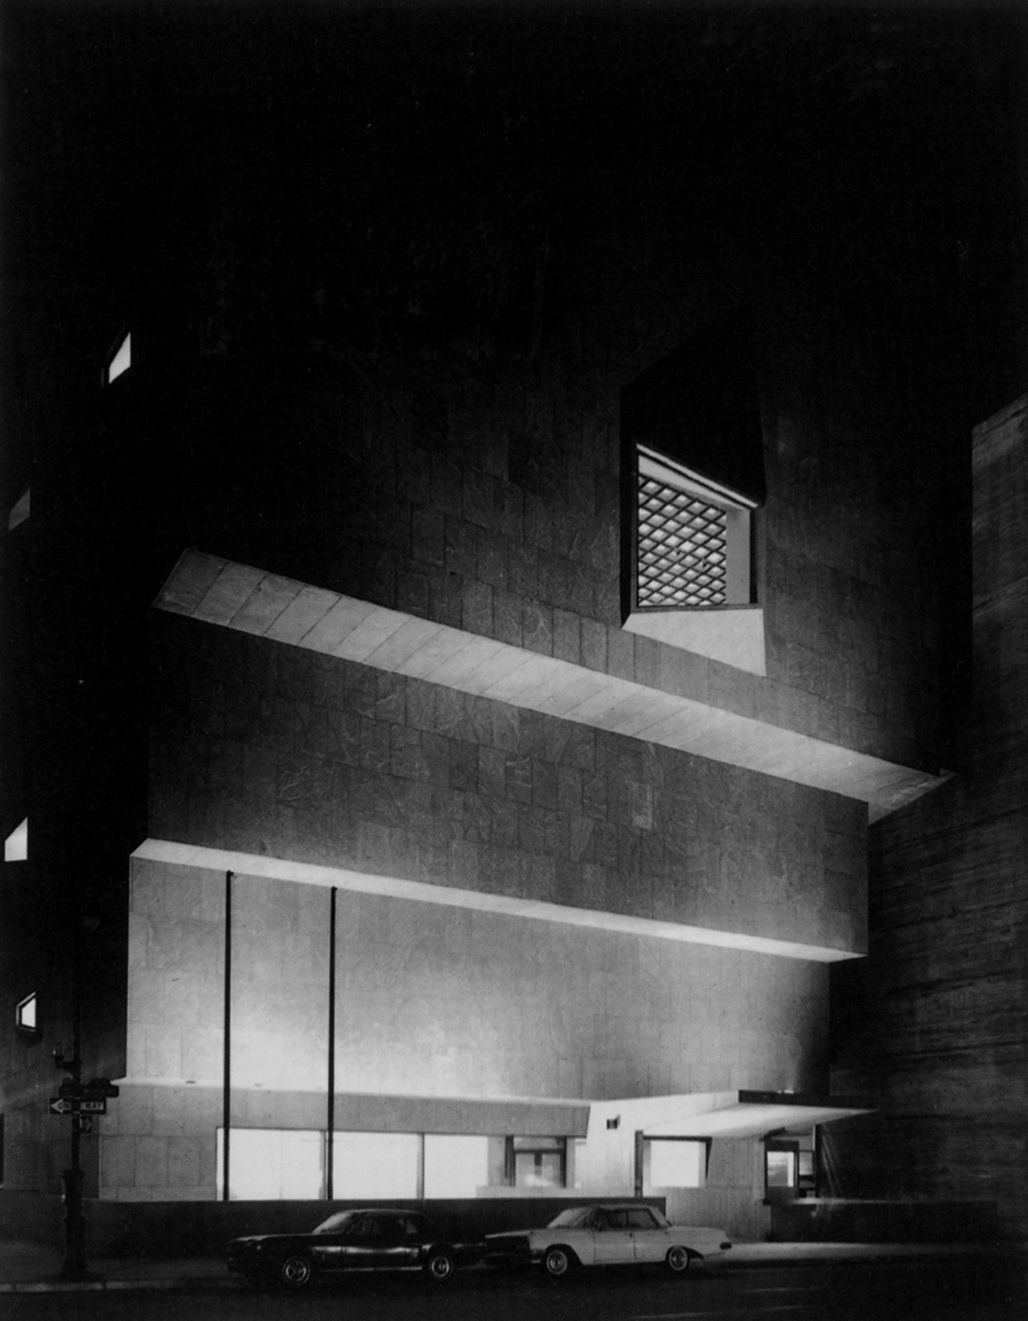 A photograph the Marcel Breuer designed Whitney Museum (now the Met Breuer). Image via The Columbia GSAPP Visual Resources Collection